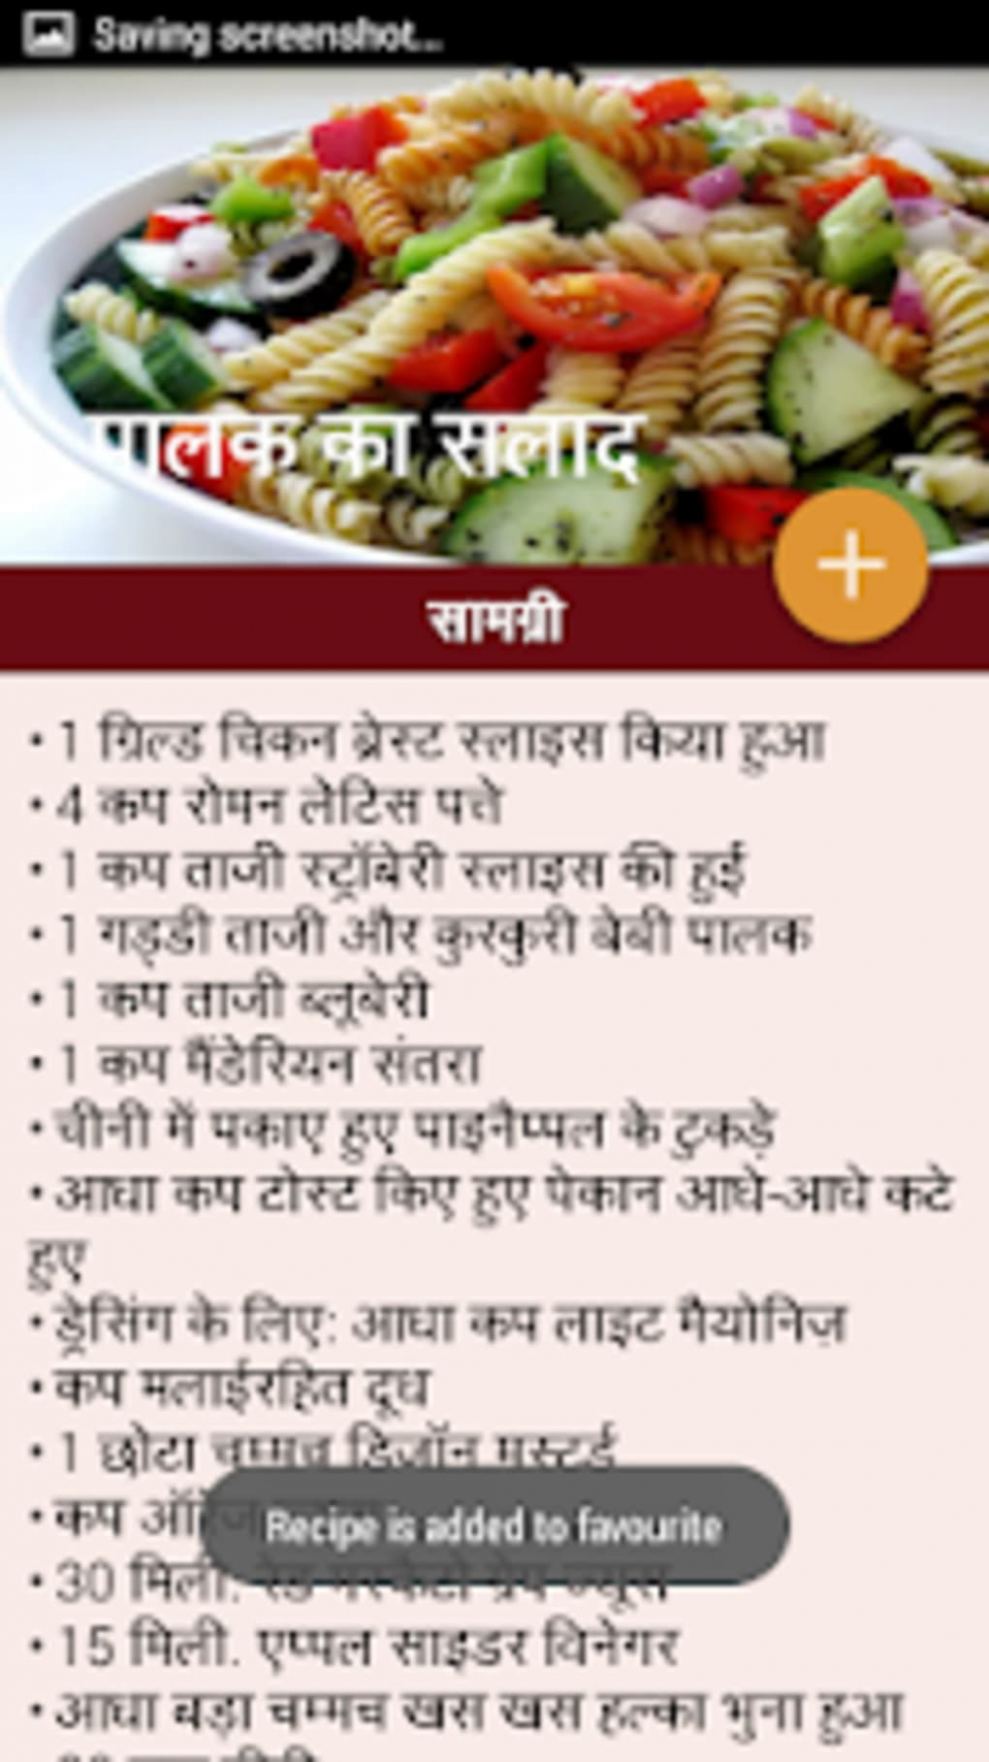 Salad Recipe in Hindi सलद रसप for Android - Download - Salad Recipes Hindi